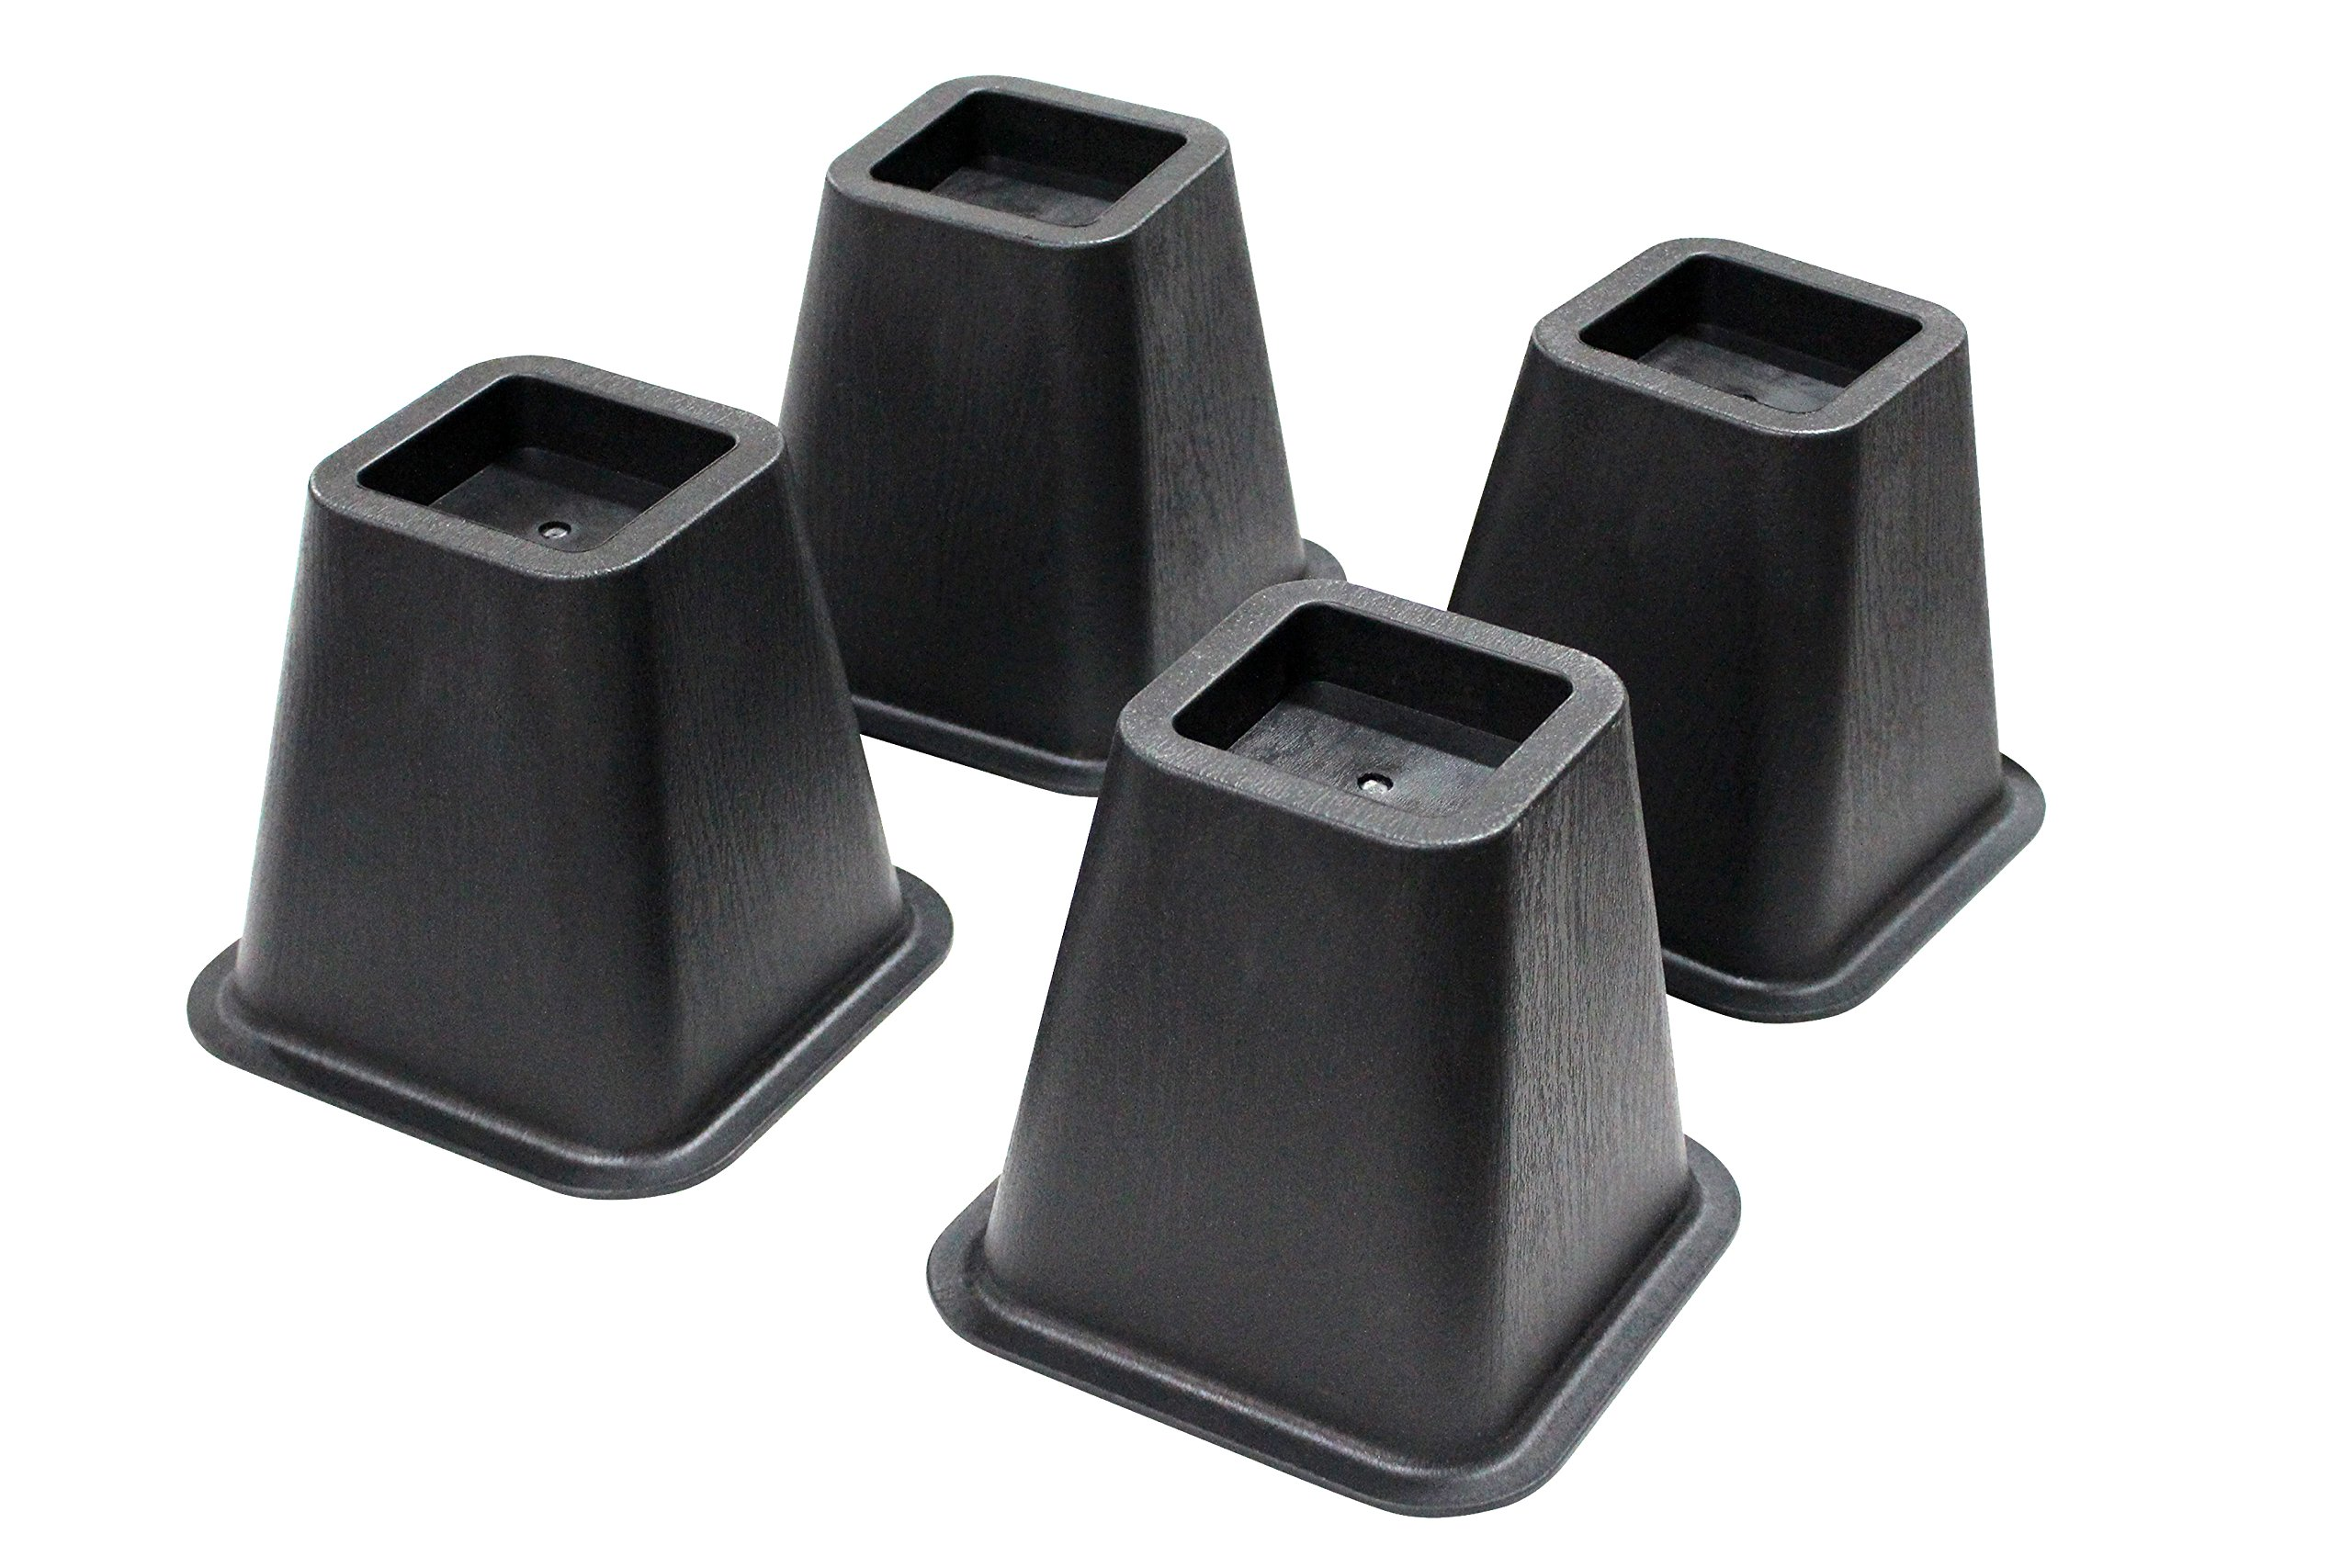 Jeronic 4-pack 5.25 Inch Bed Risers, Furniture Riser Bed Riser and Bed Lifts